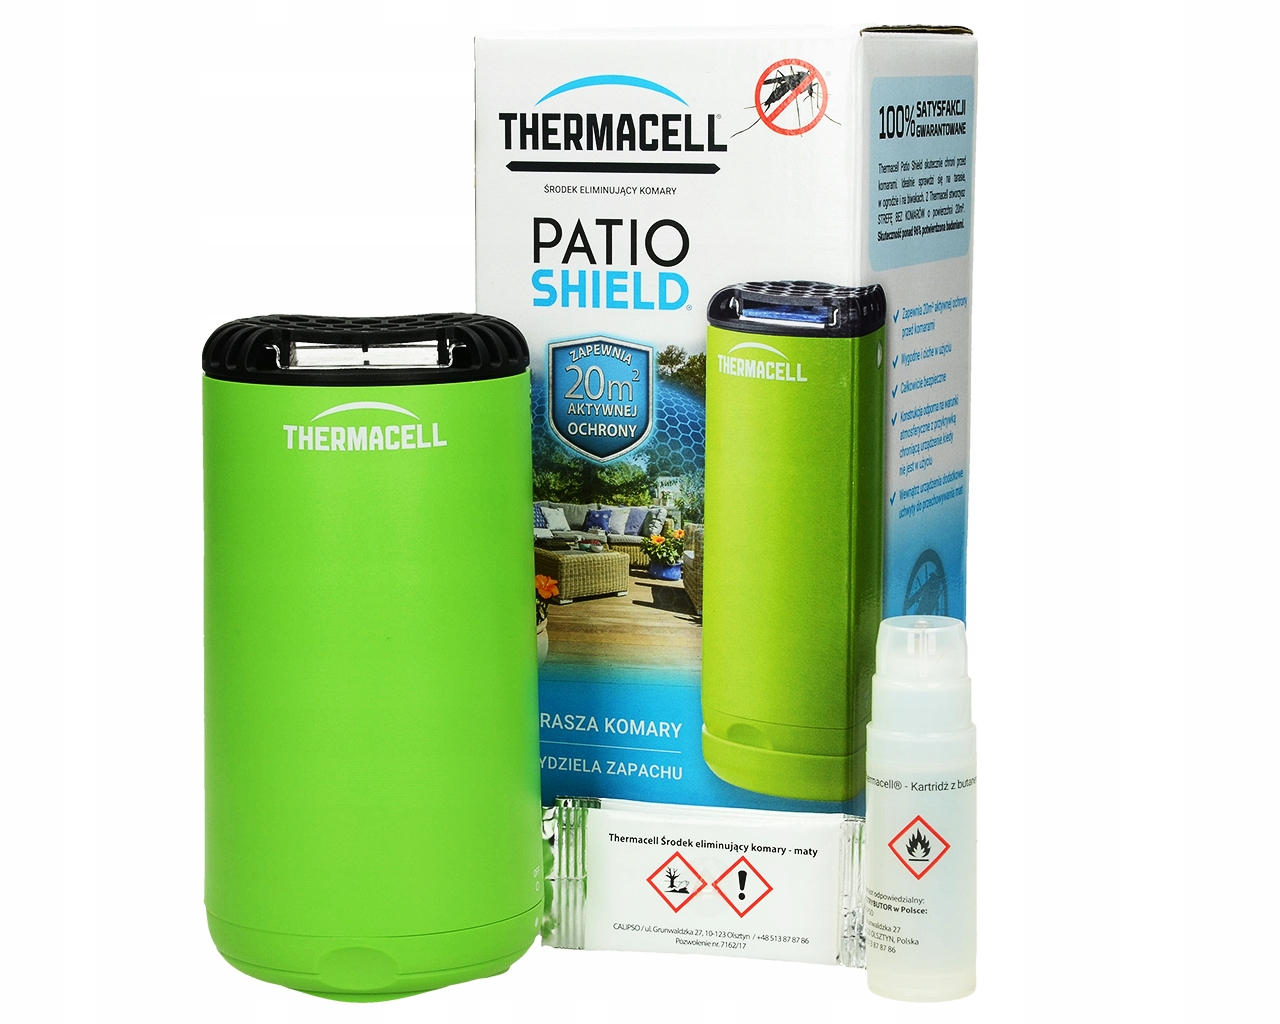 MOSQUITO REPELLER THERMACELL HMYZU V ZÁHRADE